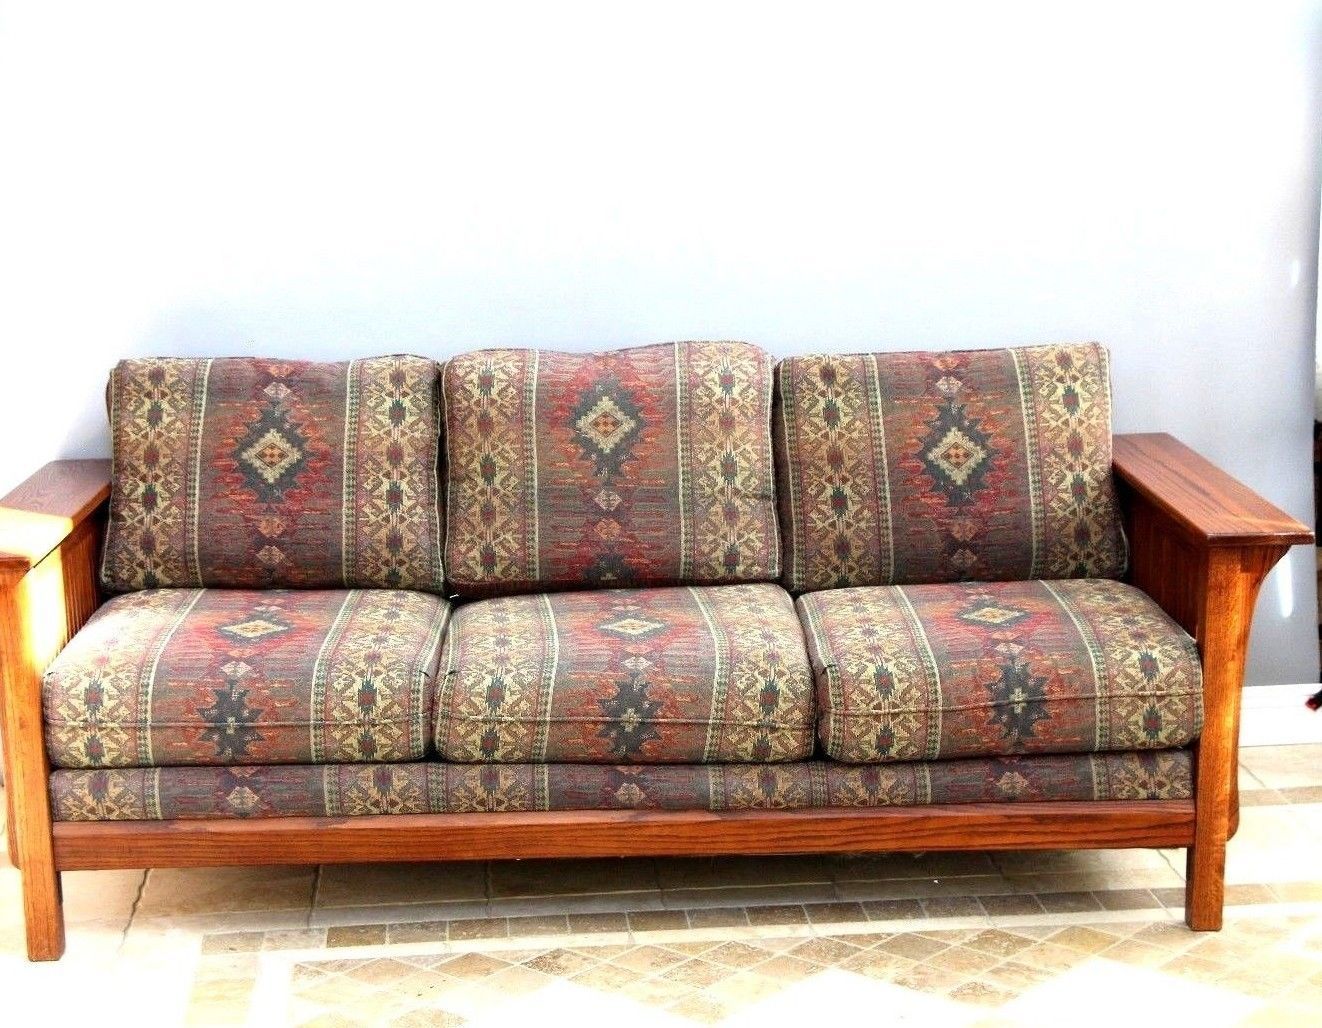 Sofa Workshop Ebay Outlet Mission Style Sofa And Chair Set Southwestern Tapestry Solid Wood